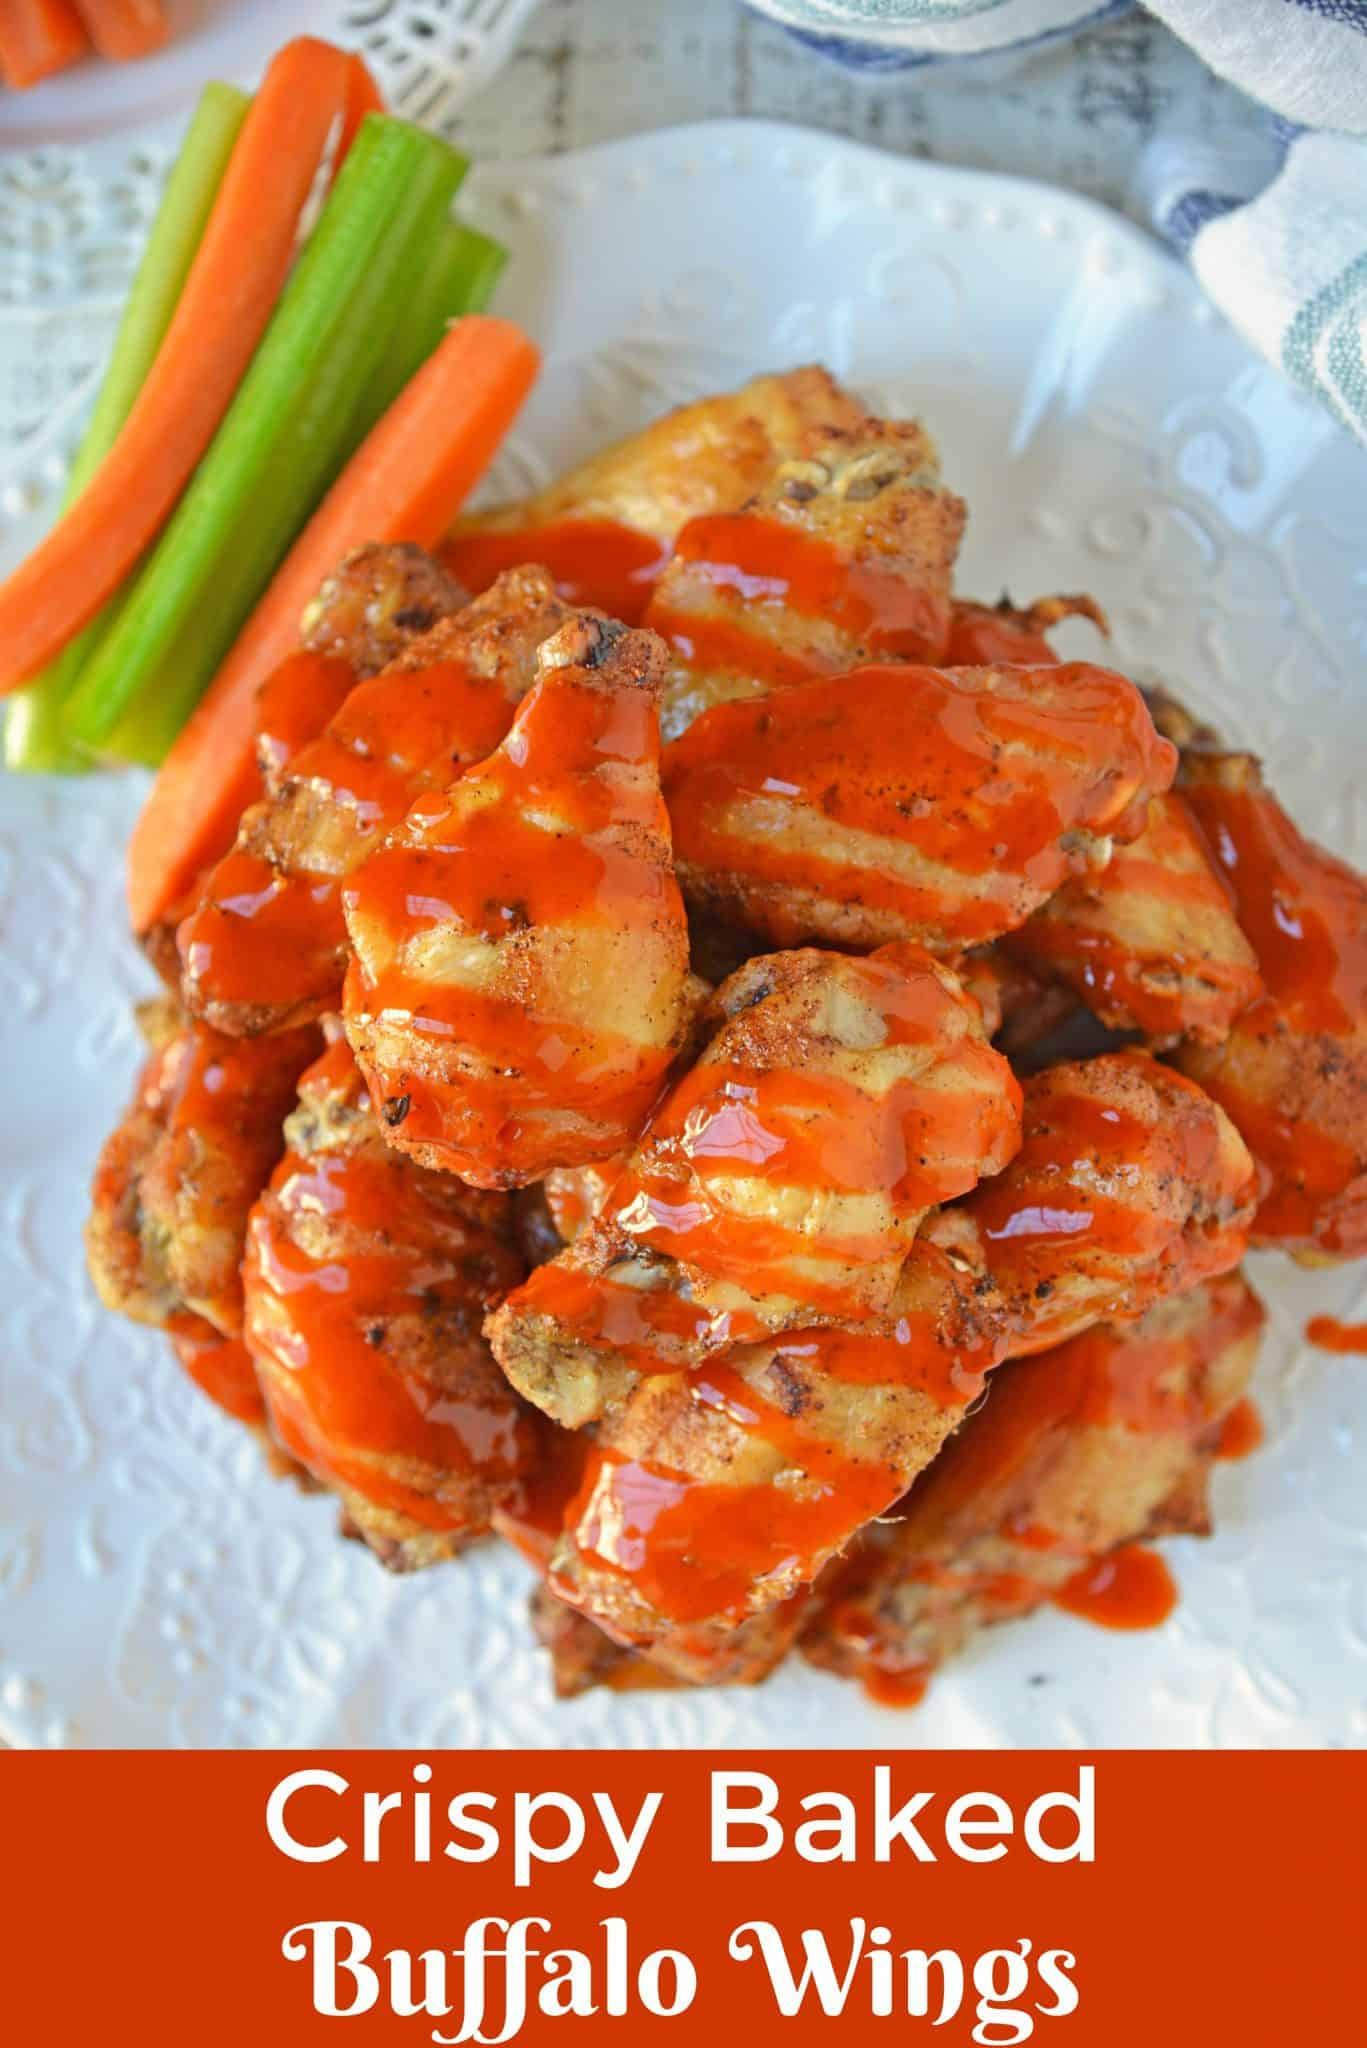 Crispy Baked Buffalo Wings are easier to make than you think. Only 5 ingredients, a simple buffalo sauce and the trick for seriously crispy wings! #bakedbuffalowings www.savoryexperiments.com